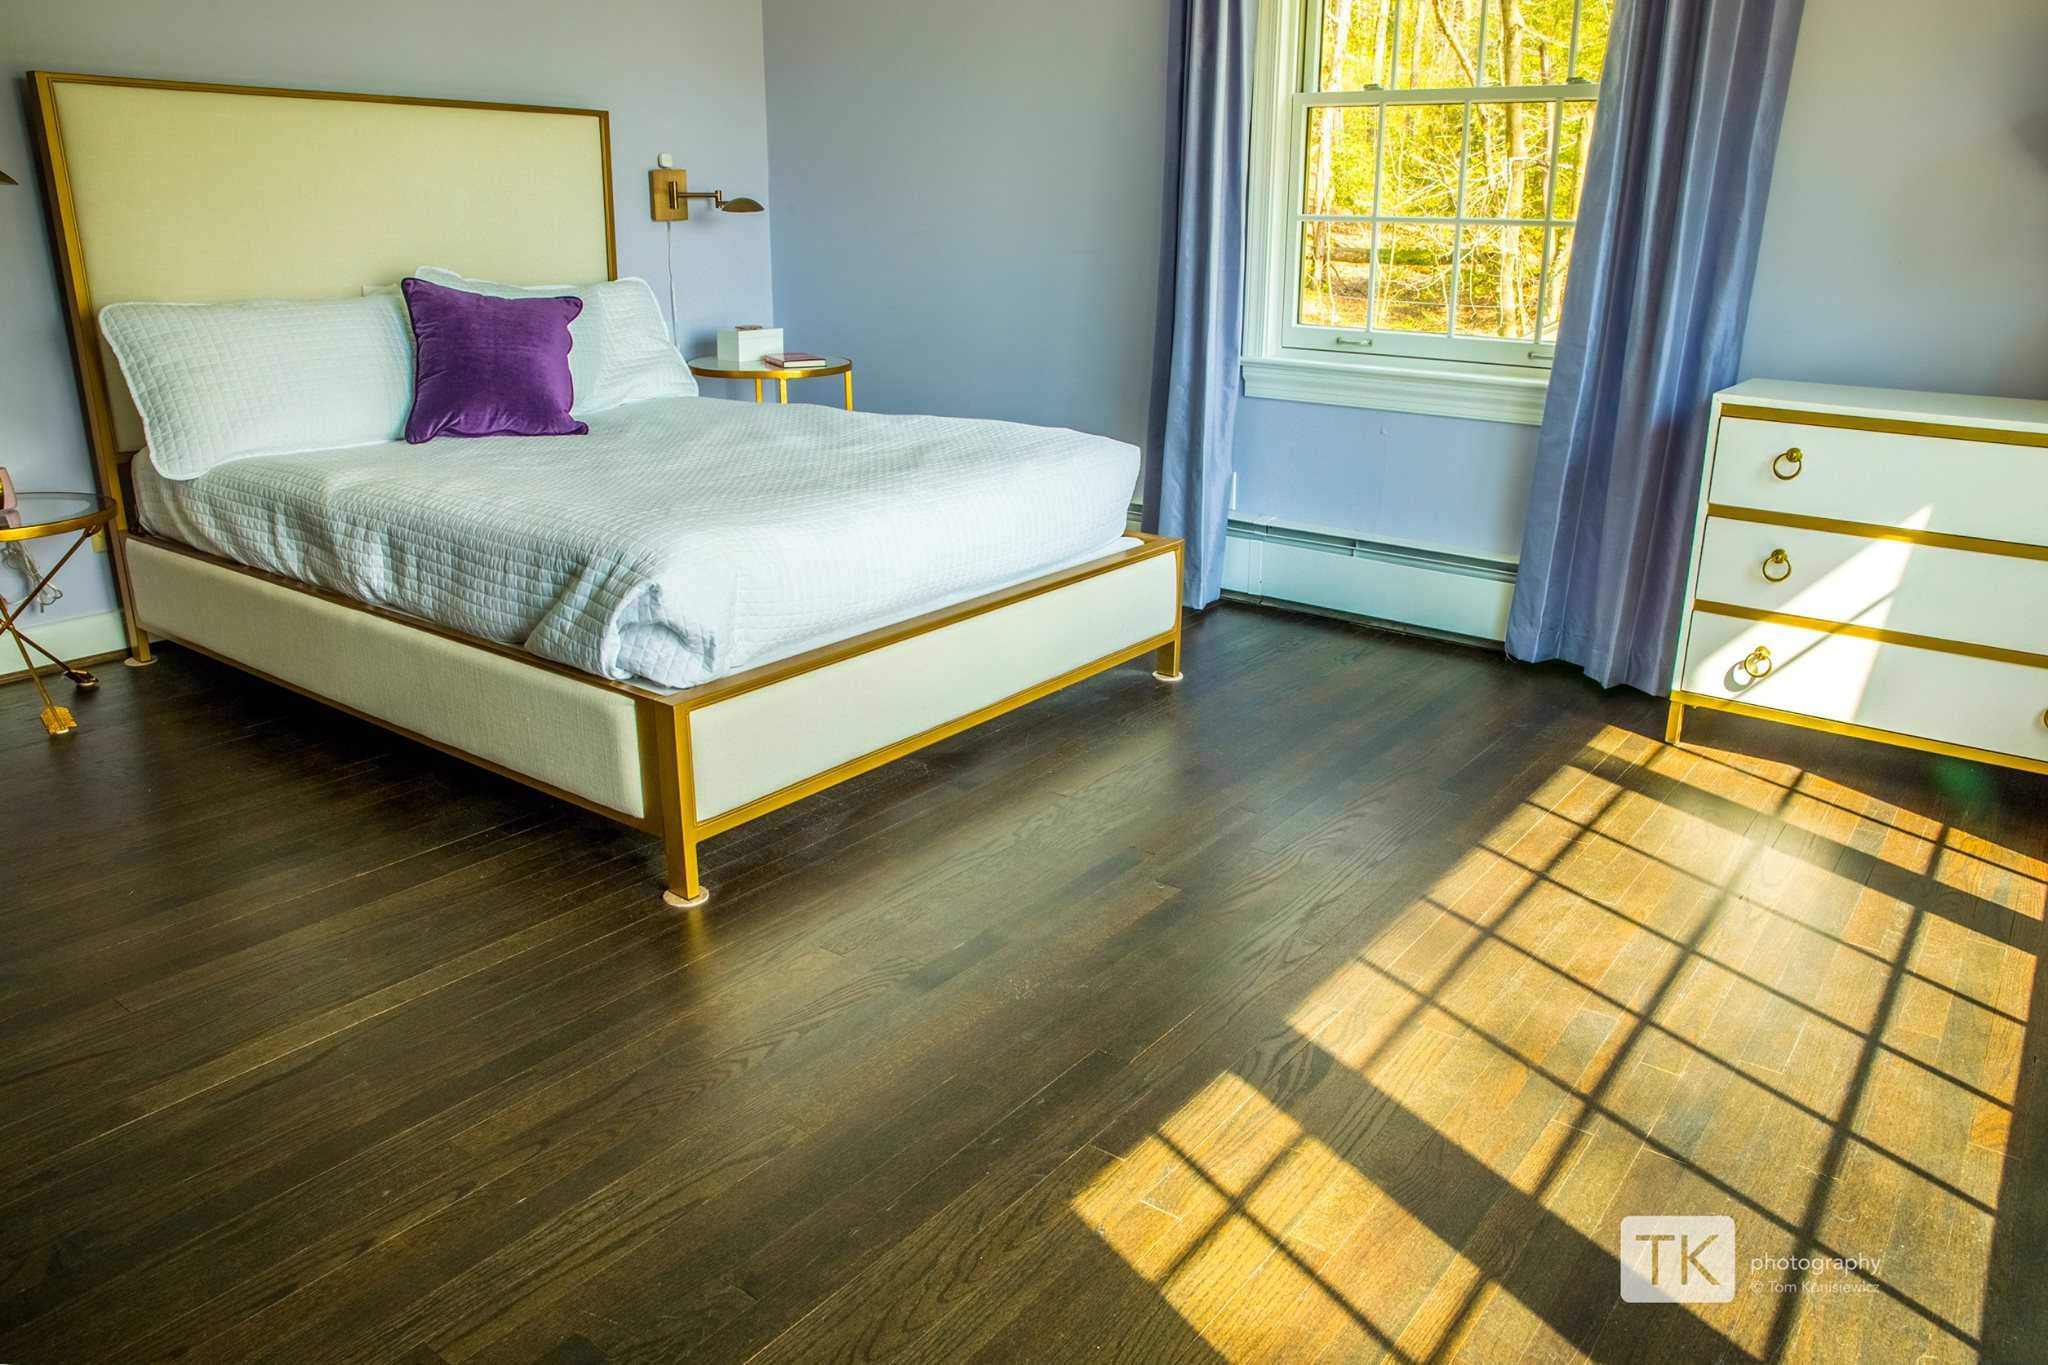 Sanding& Refinishing - Beers Flooring can handle every aspect of your hardwood floor sanding, restoration and refinishing project. Years of experience and the superior workmanship of our in-house staff has made Beers Flooring the company you can trust with your flooring project.